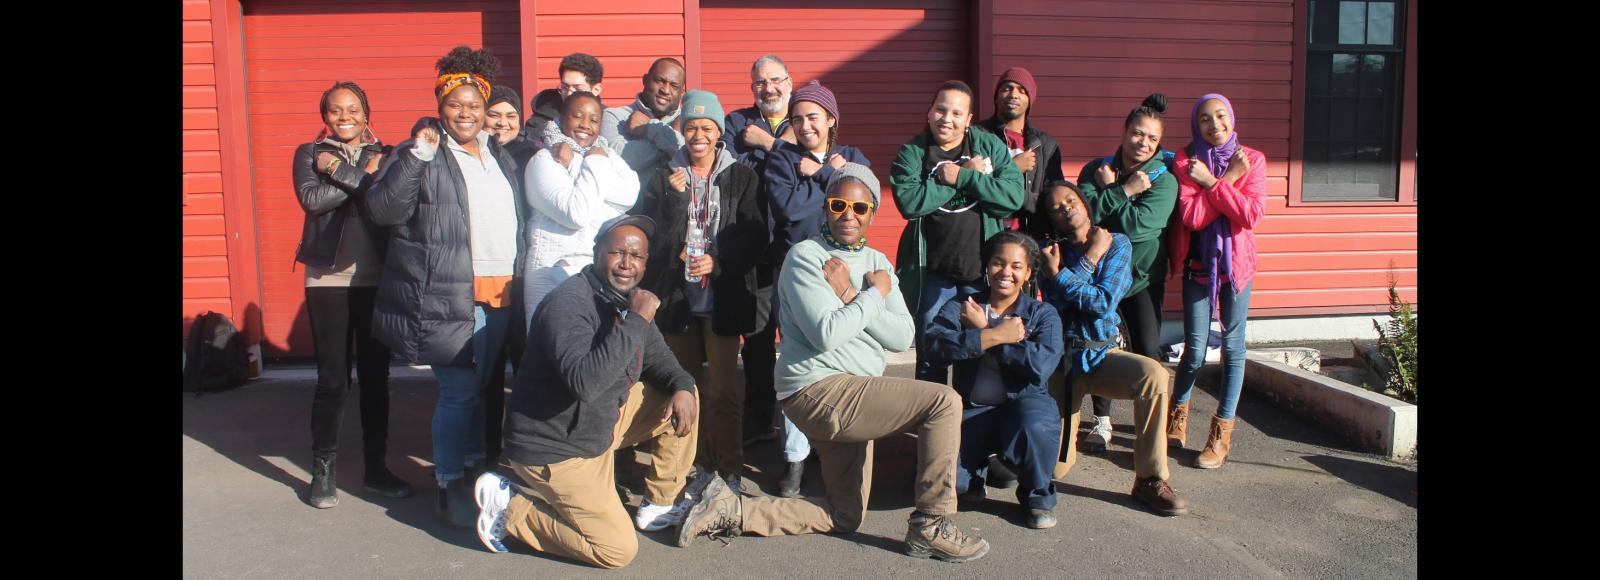 A group of people pose in front of a red warehouse. Some are raising a Black power fist, some are posing with their arms crossed over their chest in the